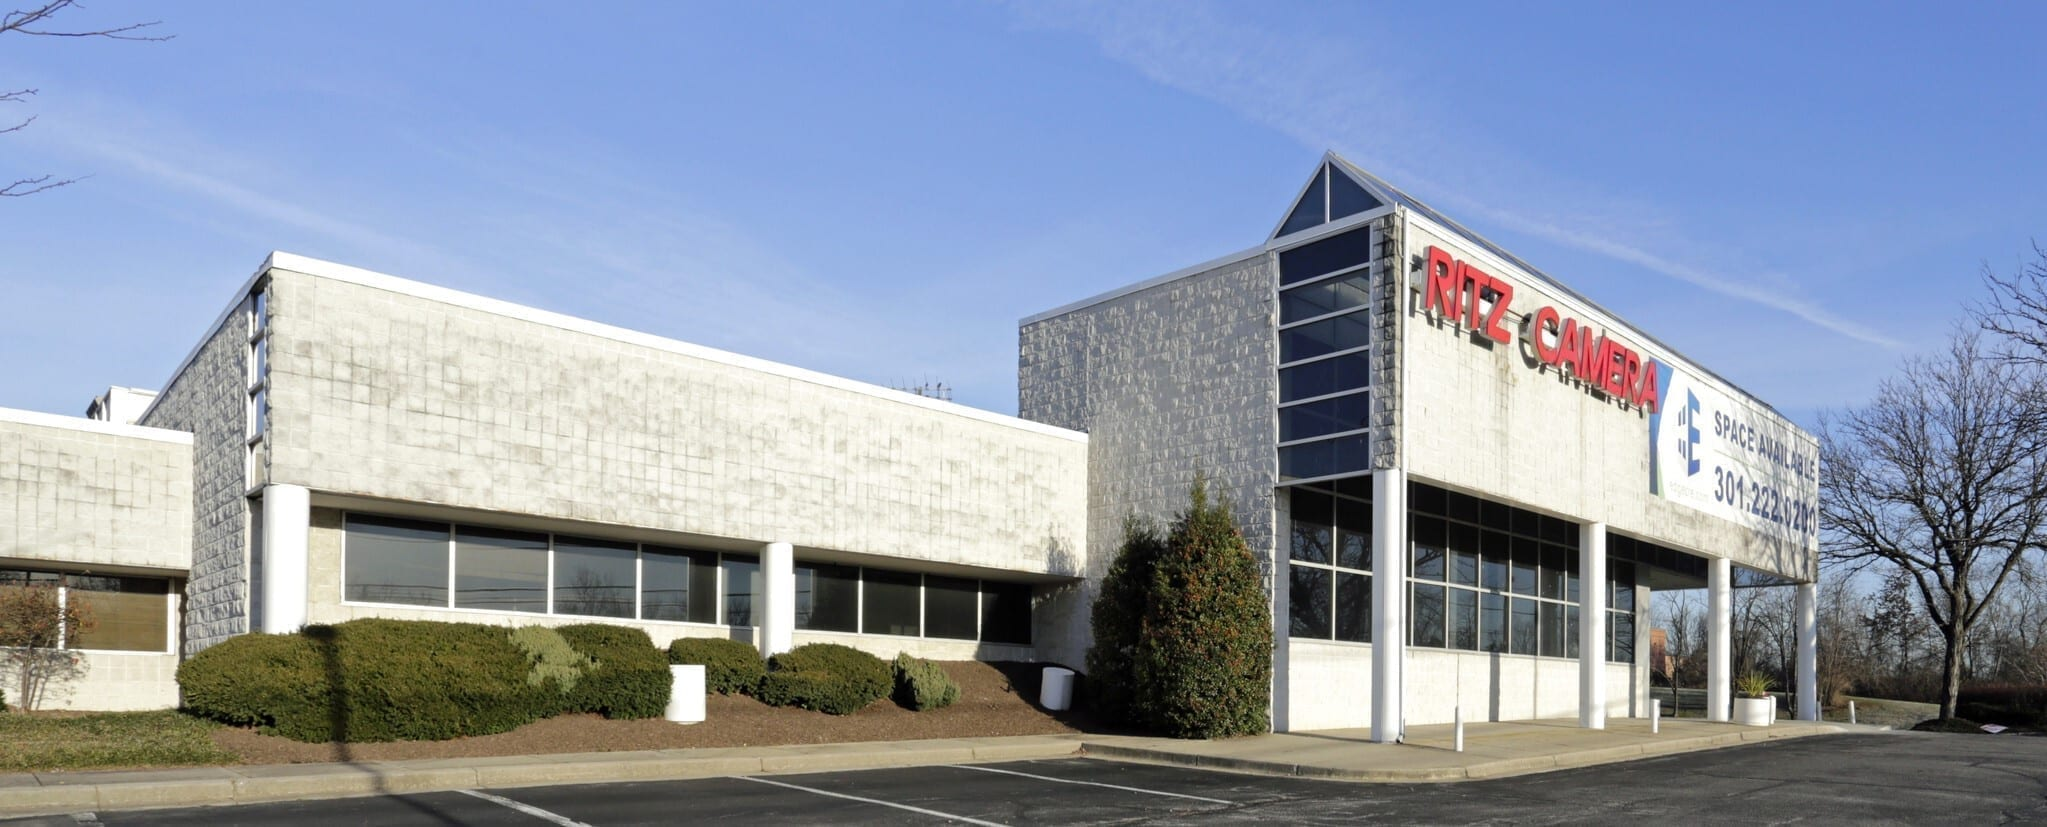 Edge Brokers Nearly 37,000 SF Warehouse/Office Lease In Beltsville Section Of Prince George's County, Maryland